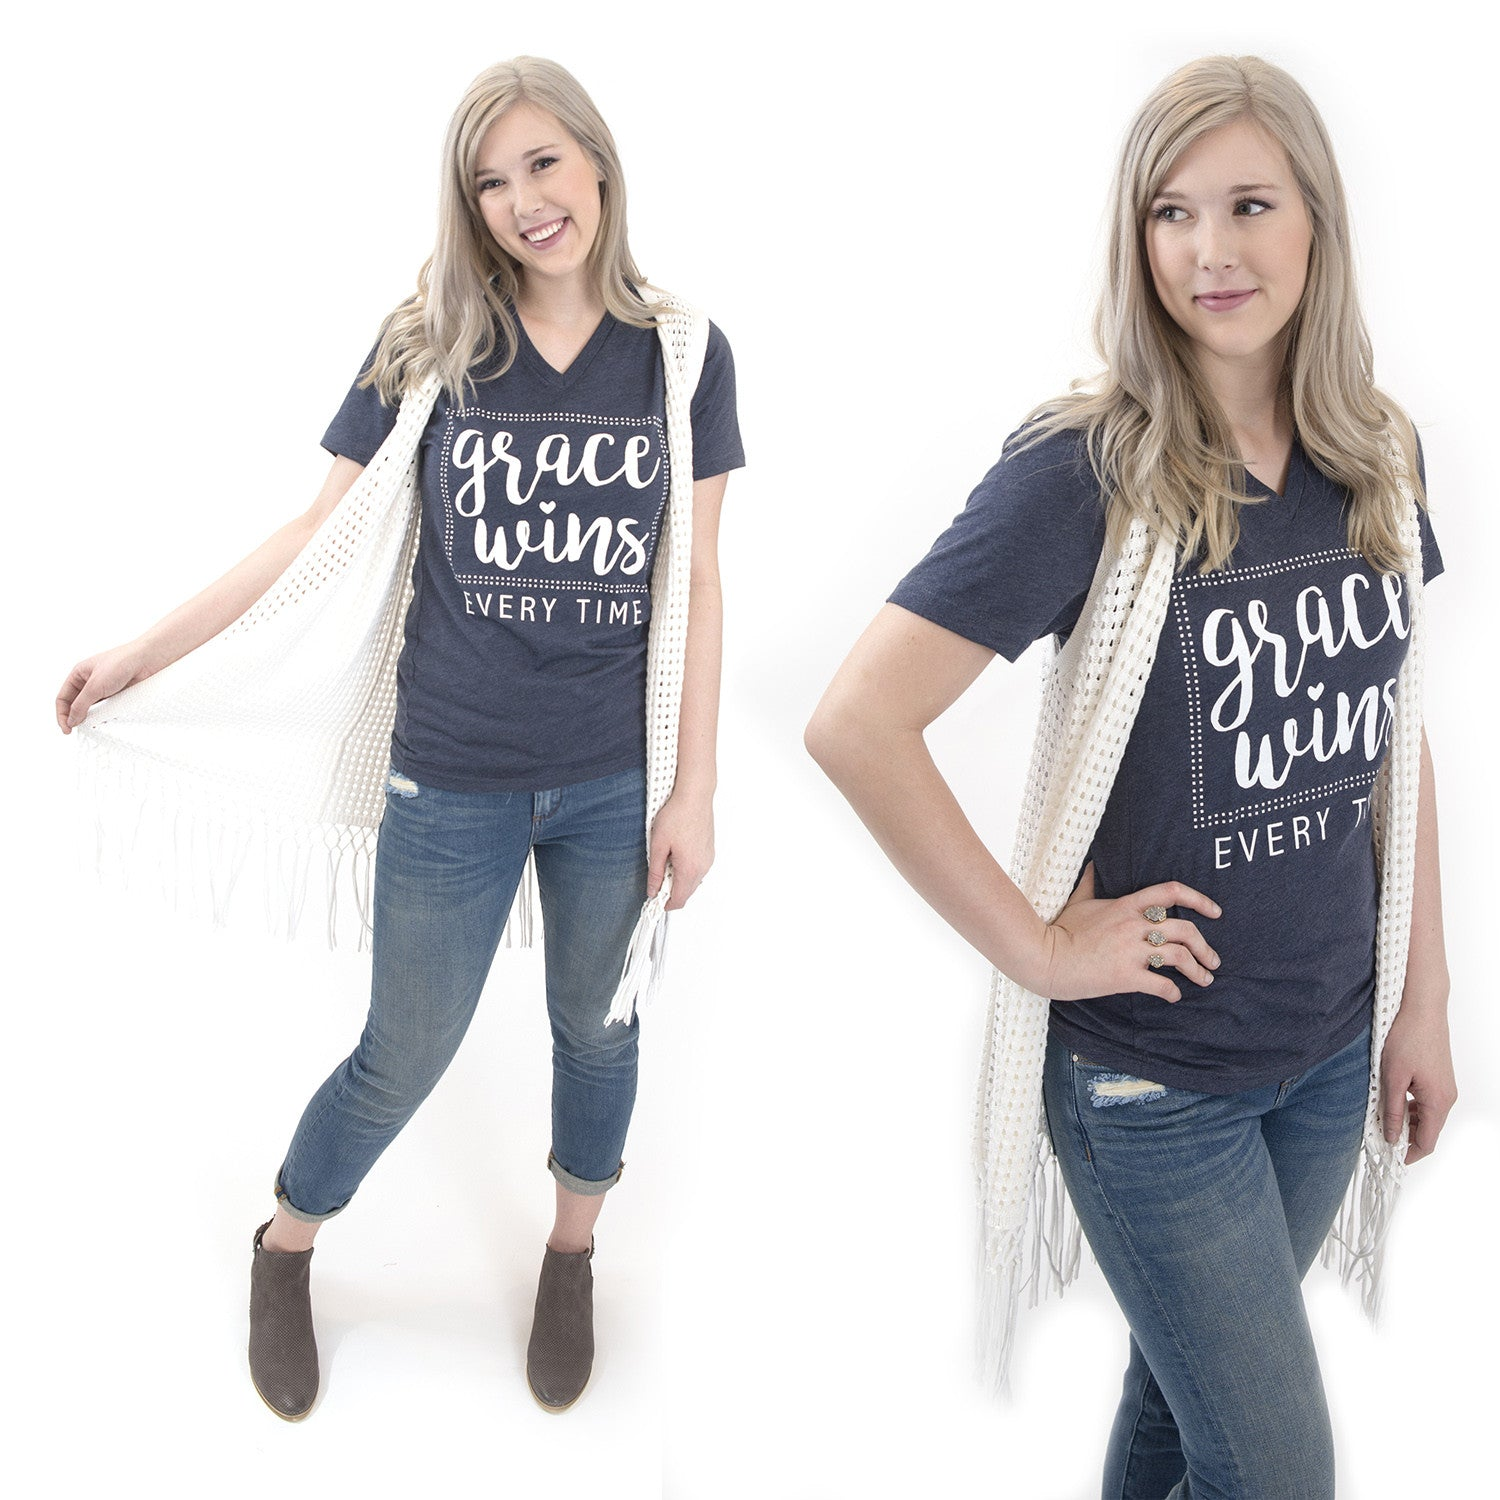 Graces Wins Every Time Christian graphic tee at Eccentrics Boutique